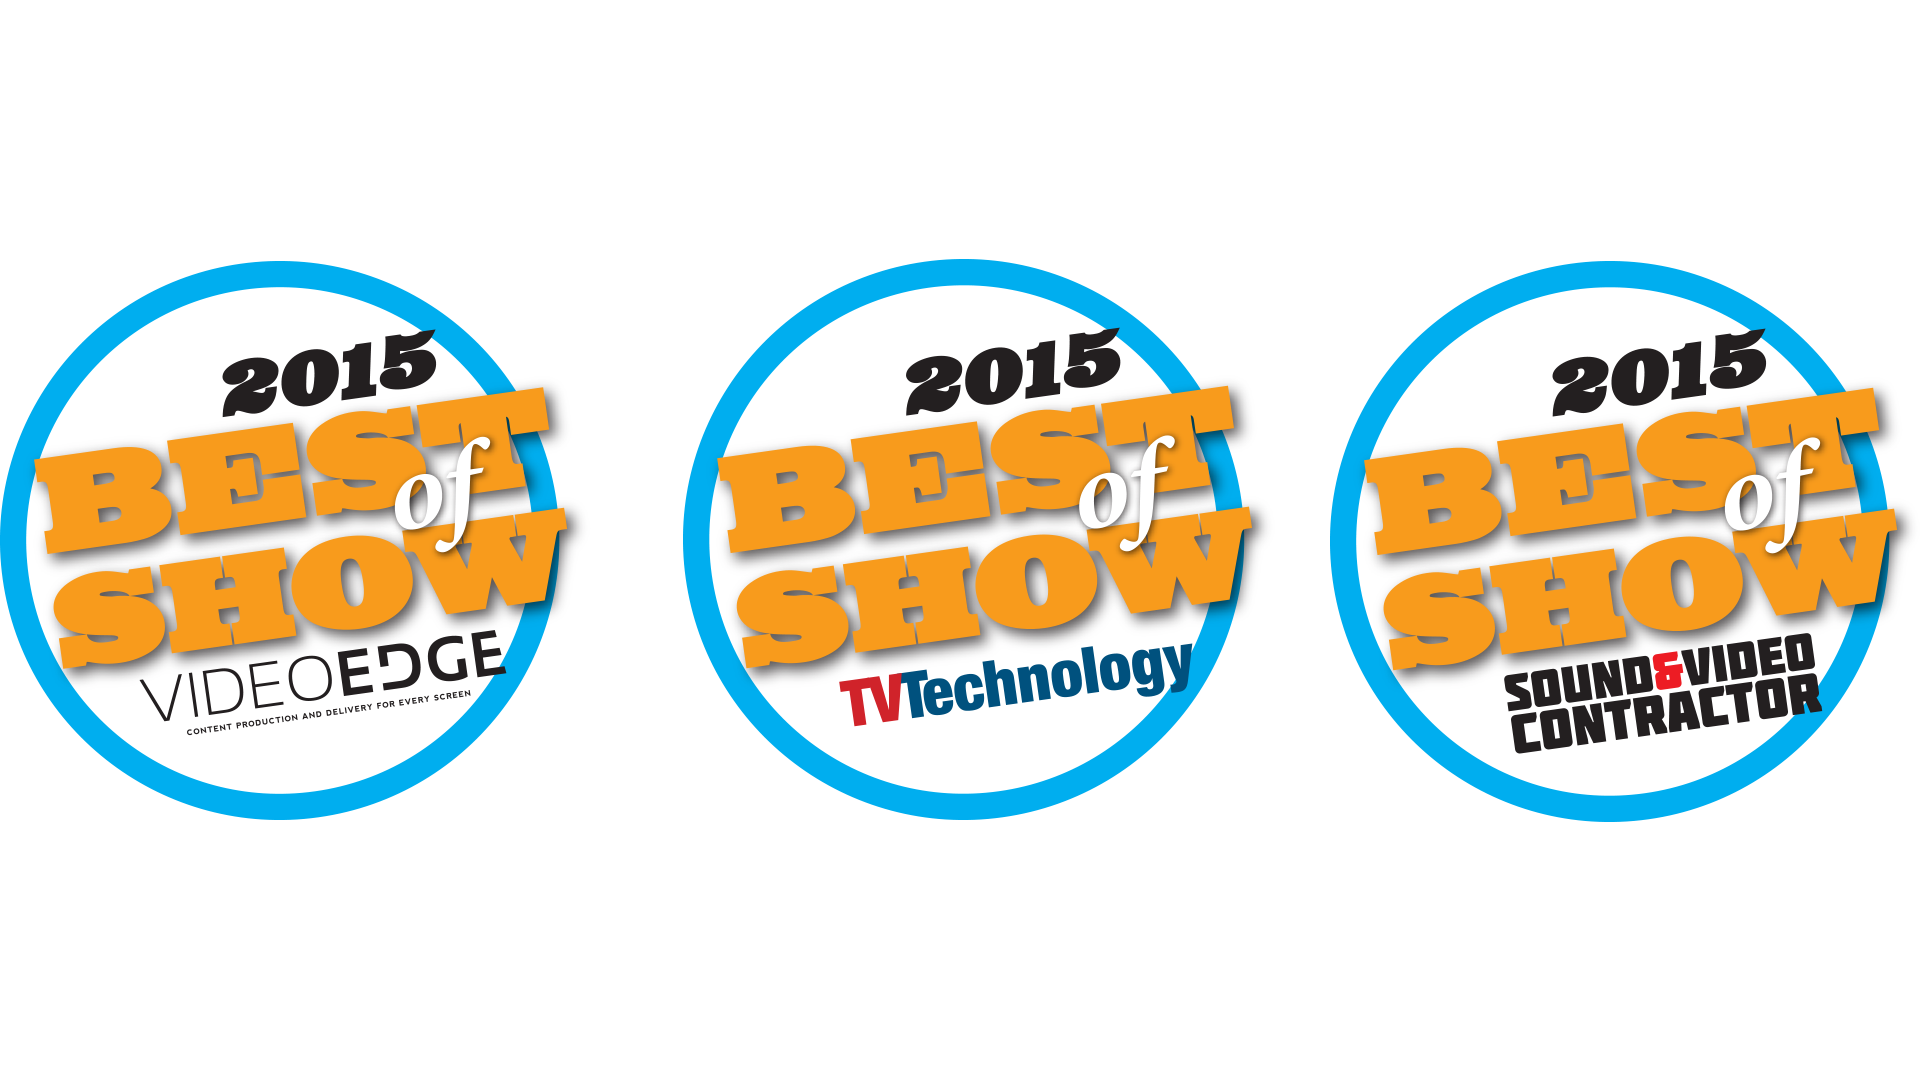 3 Best of Show Awards: Video Edge, TV Technology, Sound & Video Contractor